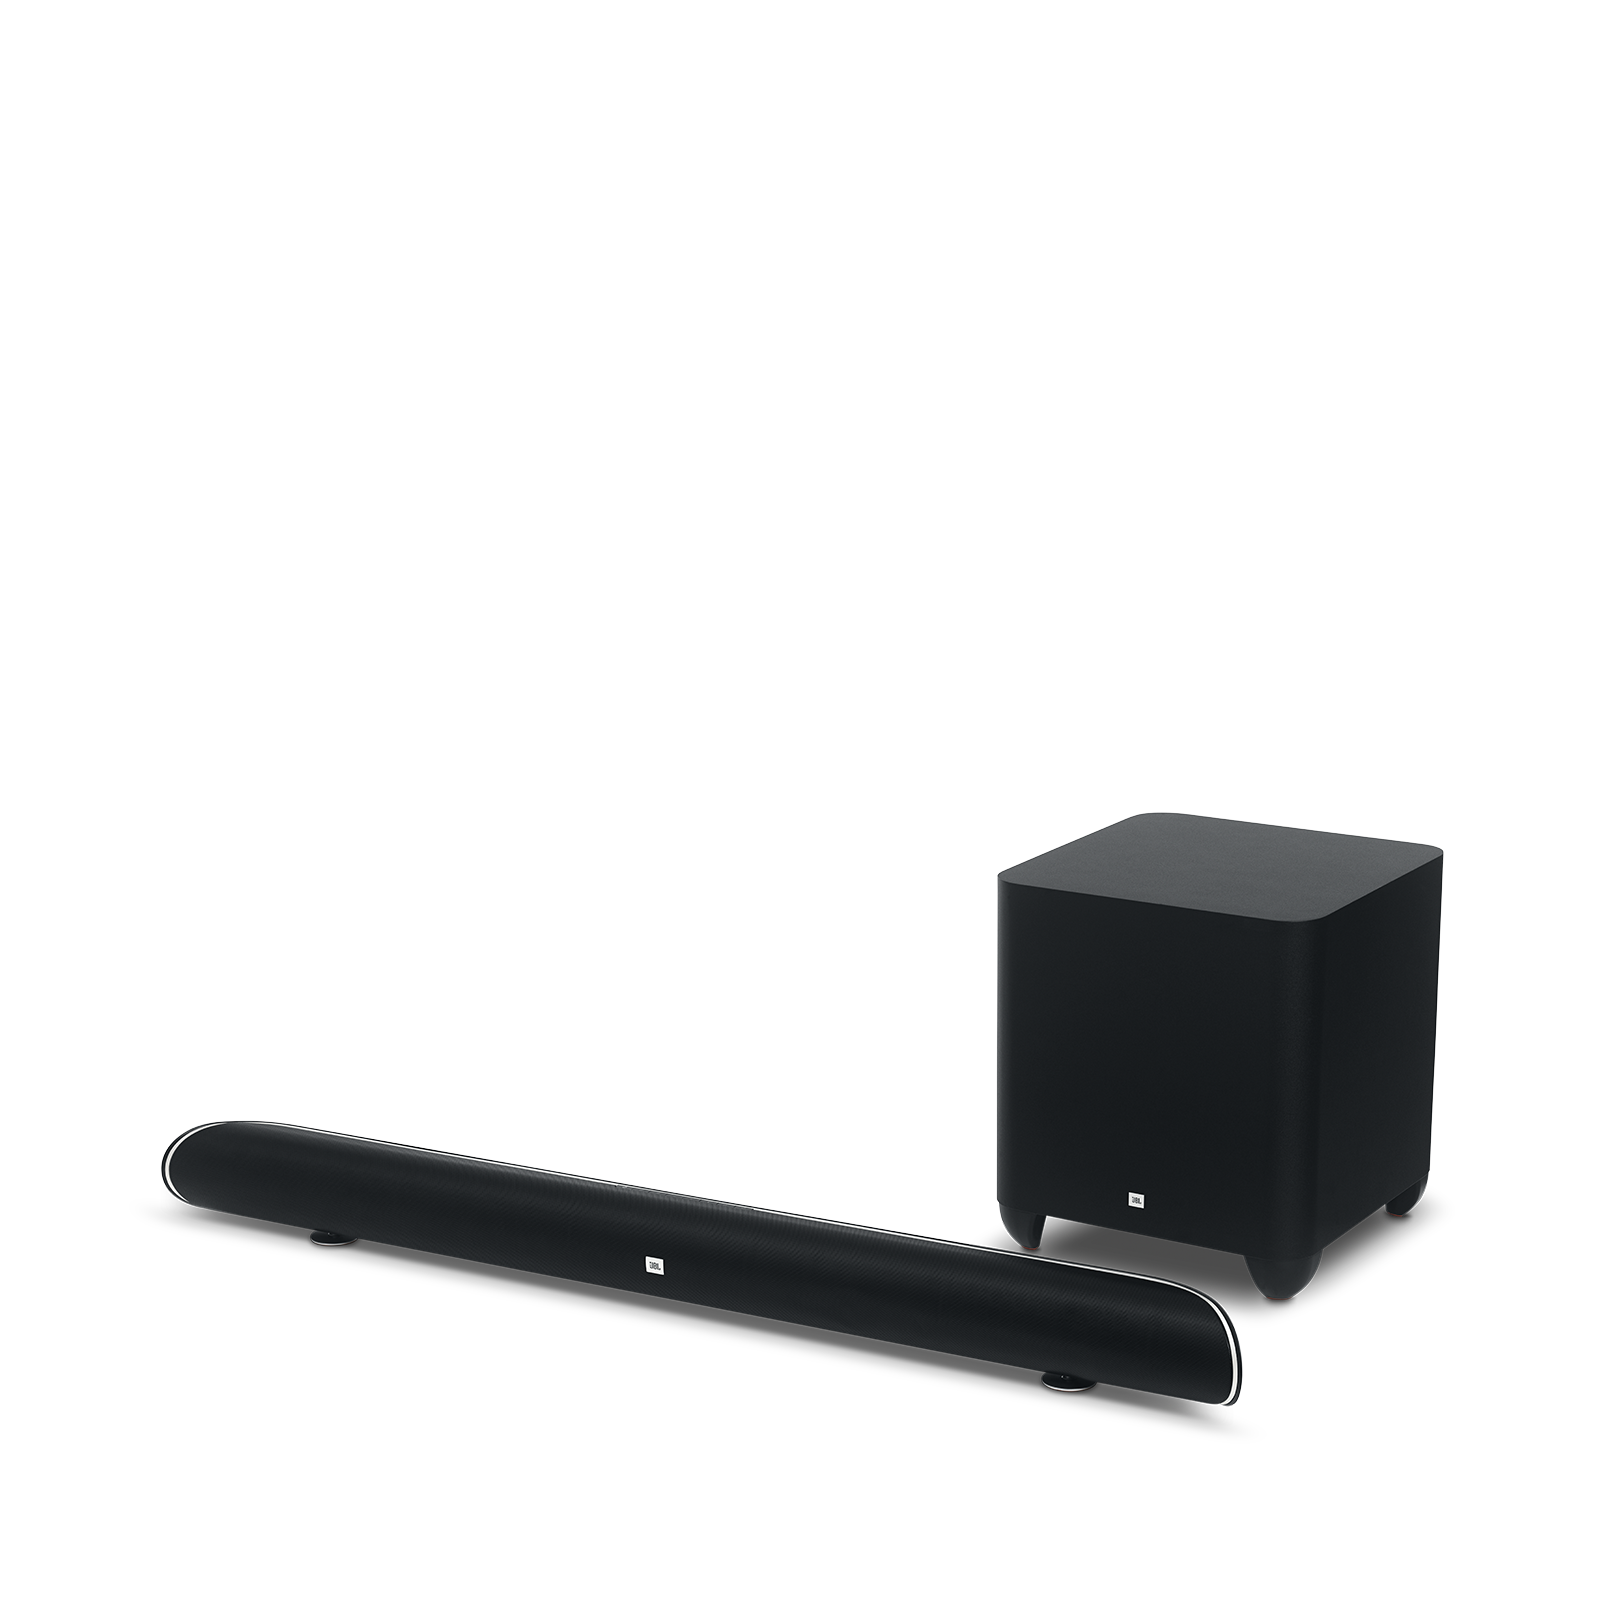 Cinema SB 450 - Black - 4K Ultra-HD soundbar with wireless subwoofer. - Hero